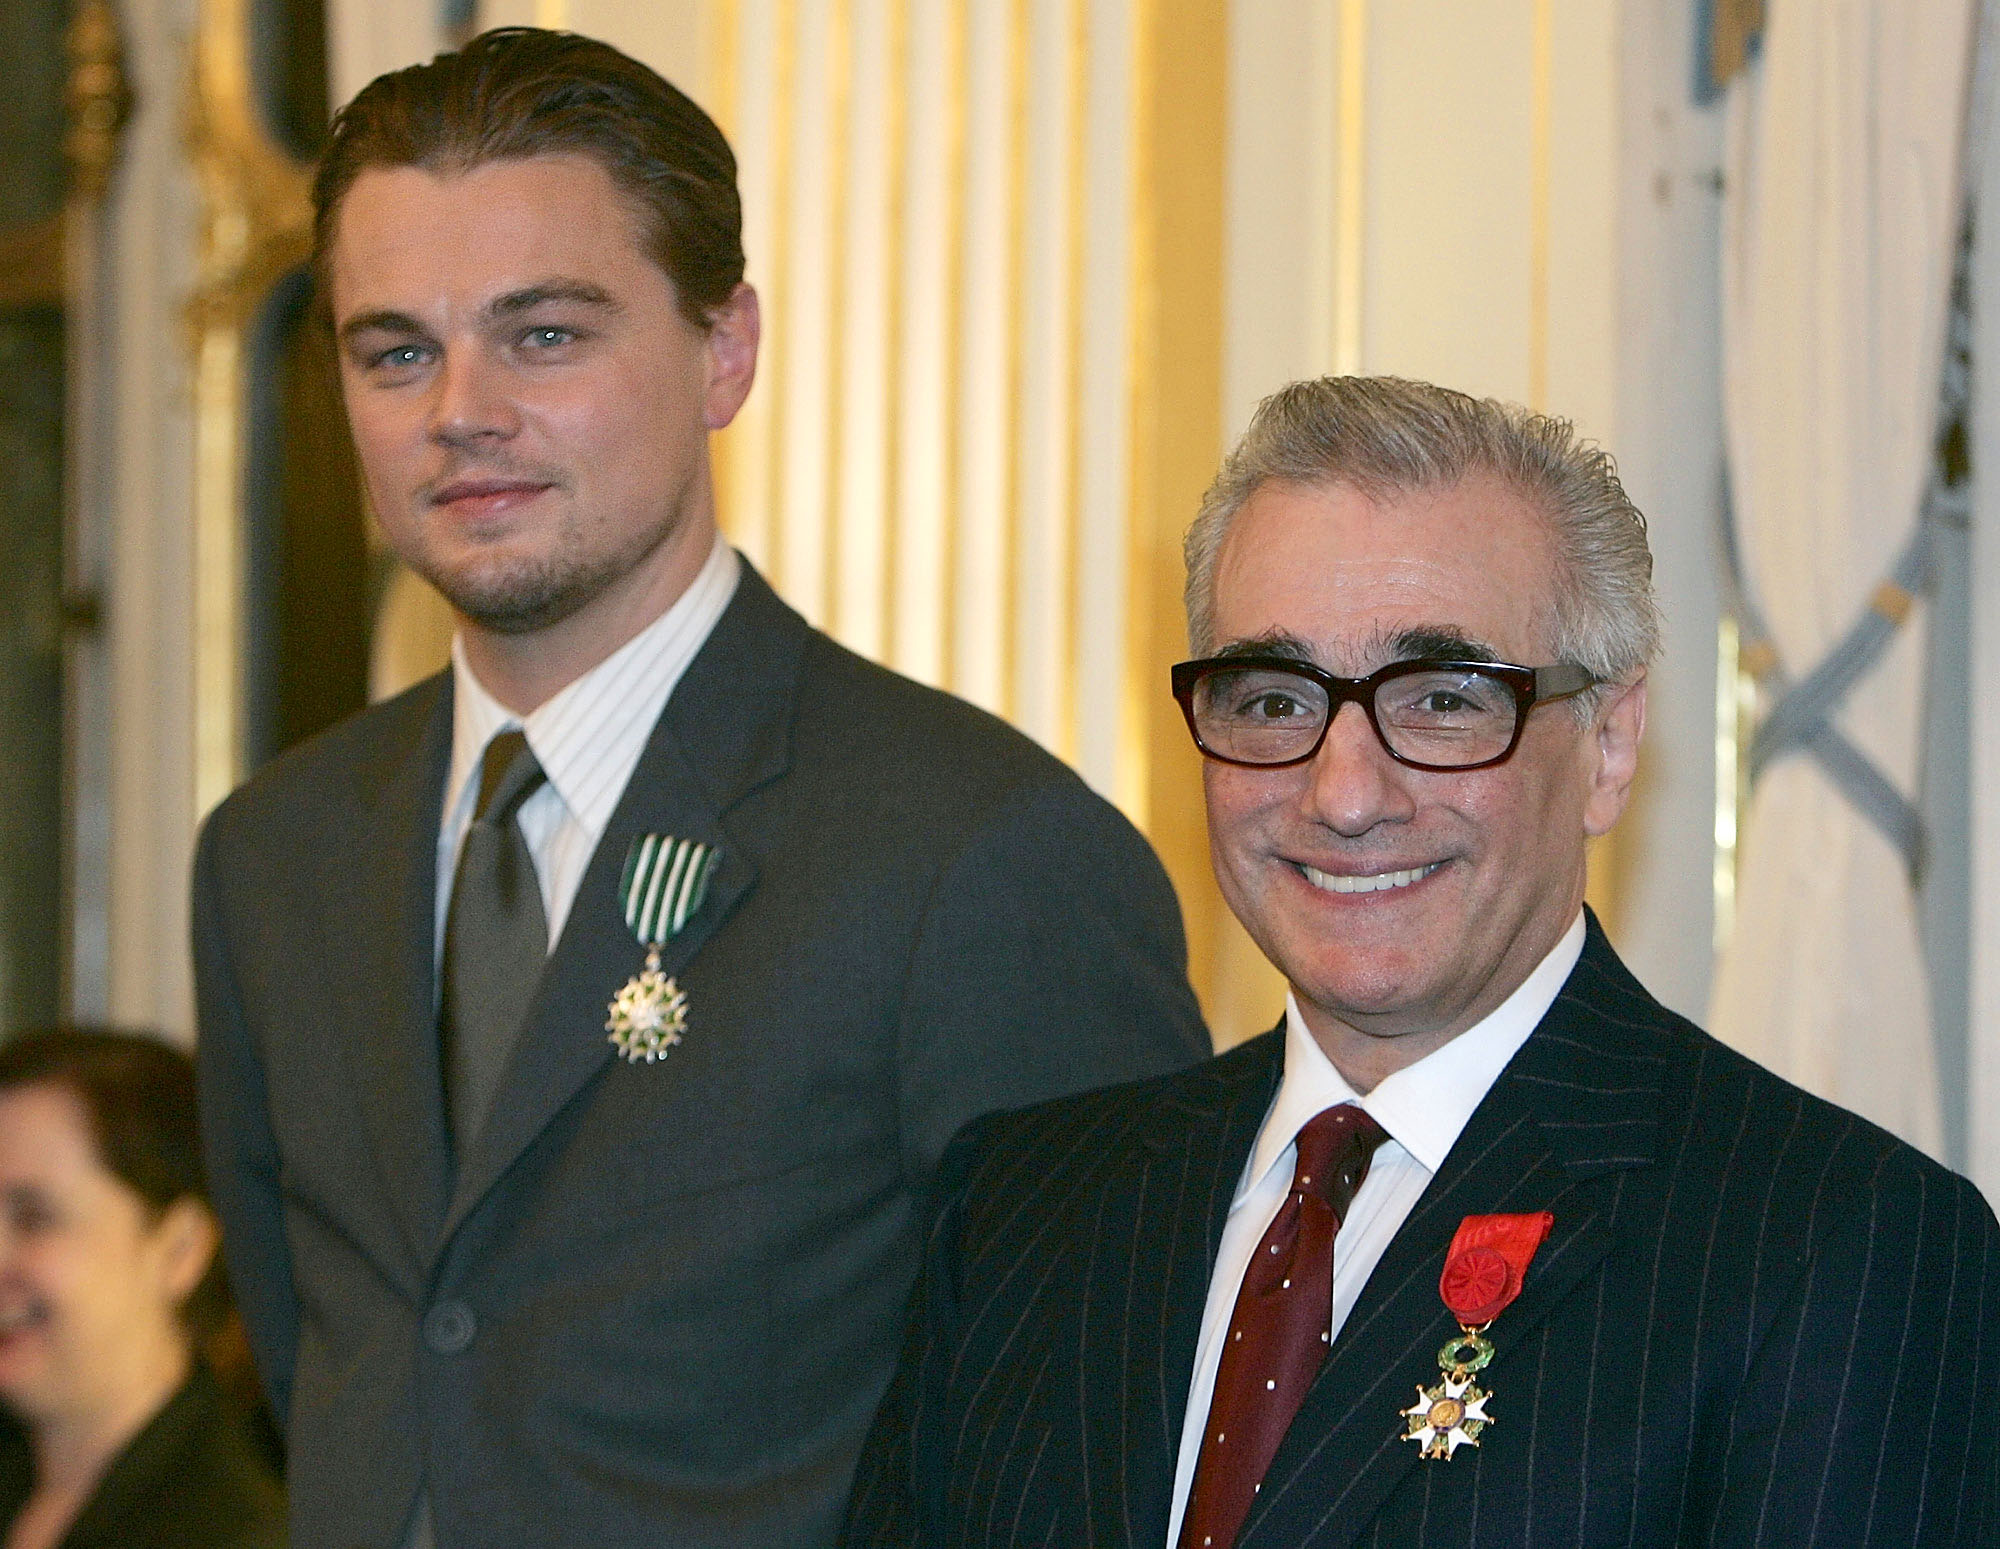 DiCaprio reunites with Scorsese to play serial killer